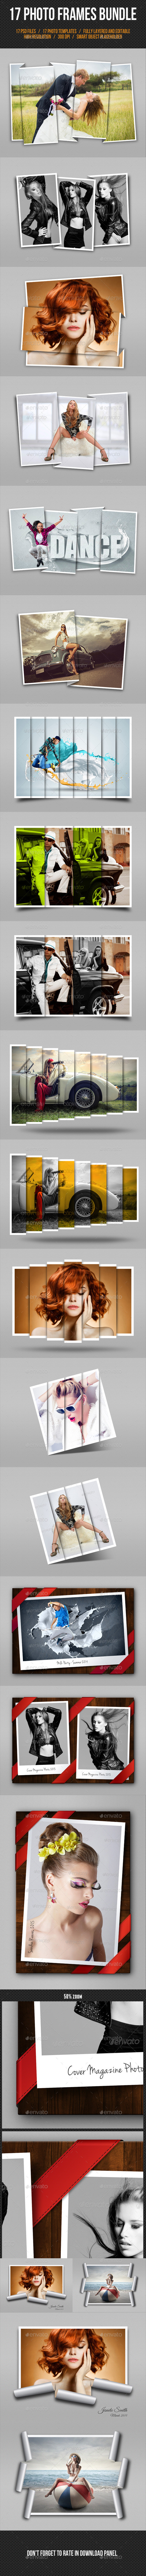 GraphicRiver 17 Photo Frames Bundle 06 11766272